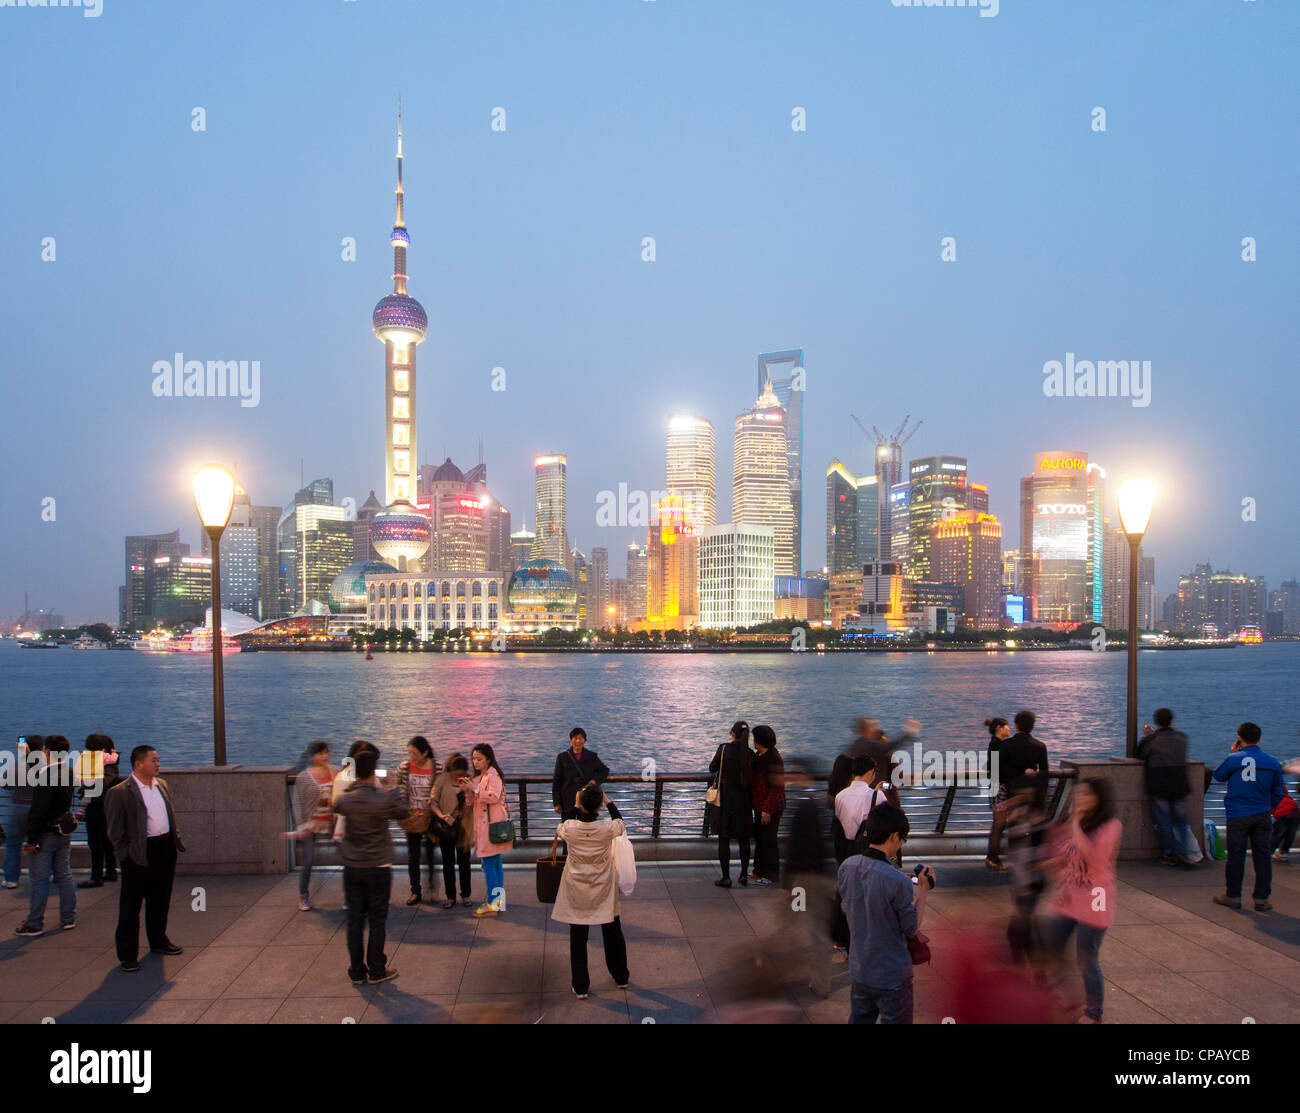 Voir la soirée du Bund des rues de la région de Pudong District de Shanghai en Chine Photo Stock